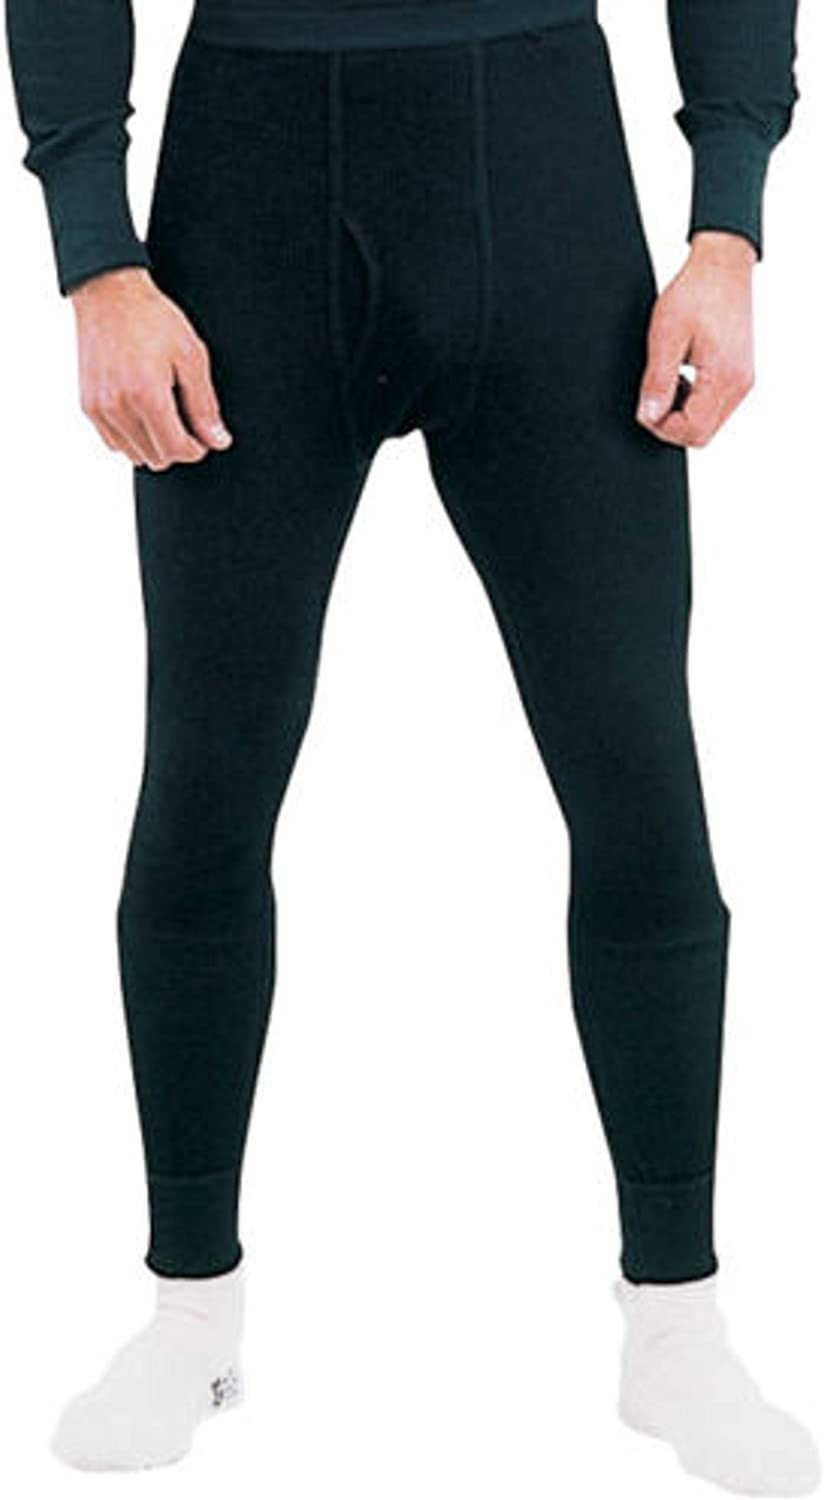 Military Thermal Knit Underwear Cold Weather Long Johns Waffle Warm Base Layer (Black)